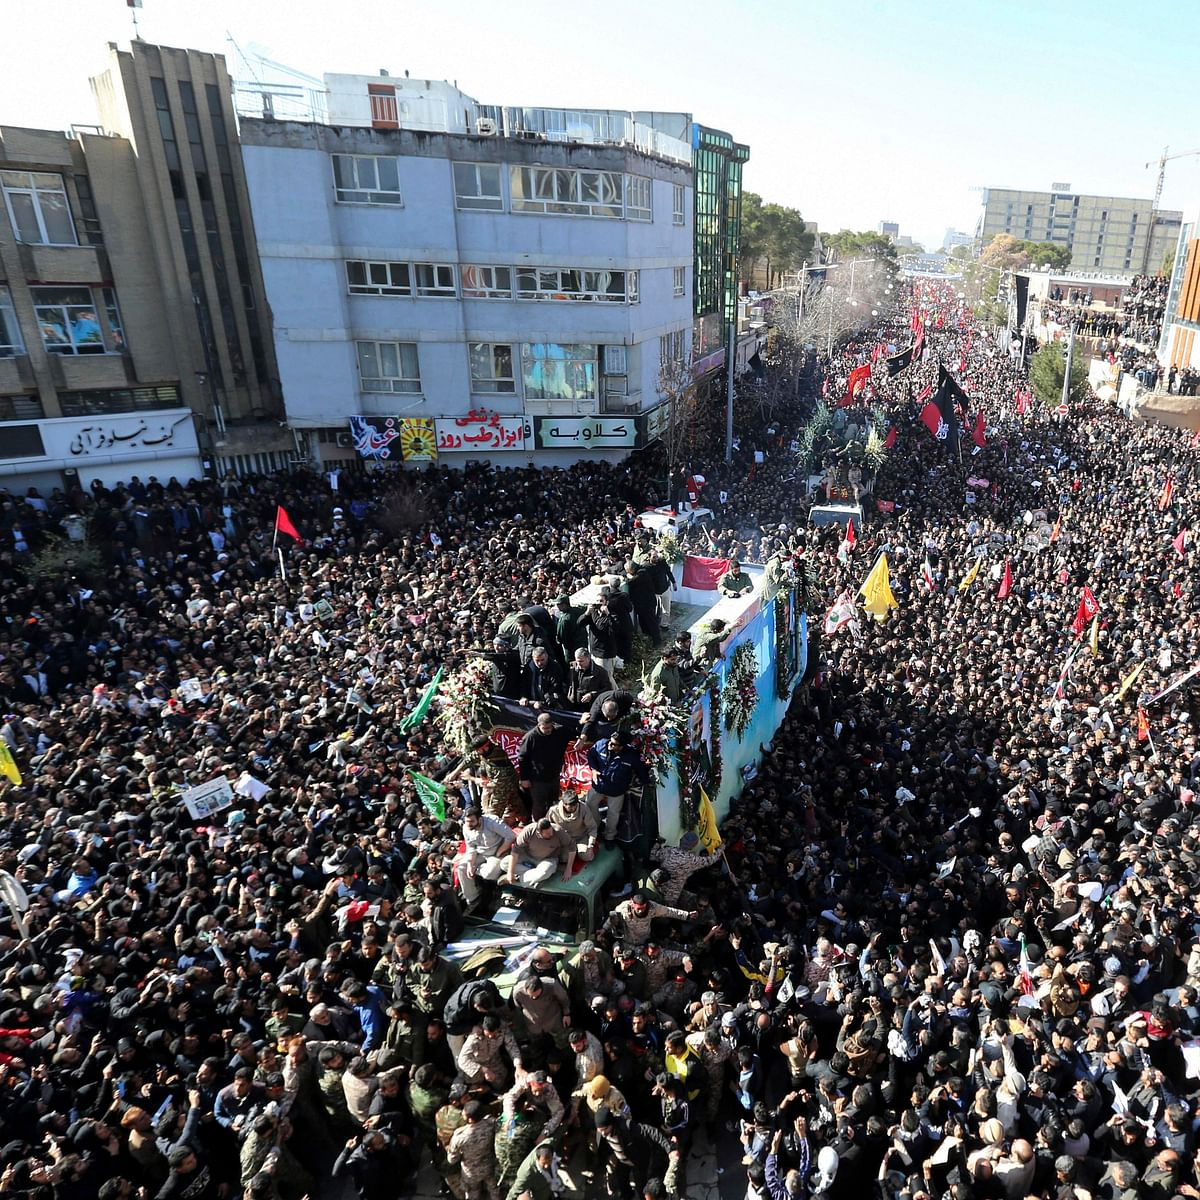 The funeral procession of Gen. Qassem Soleimani in the city of Kerman, Iran, on Tuesday, Jan. 7, 2020. (PTI photo)